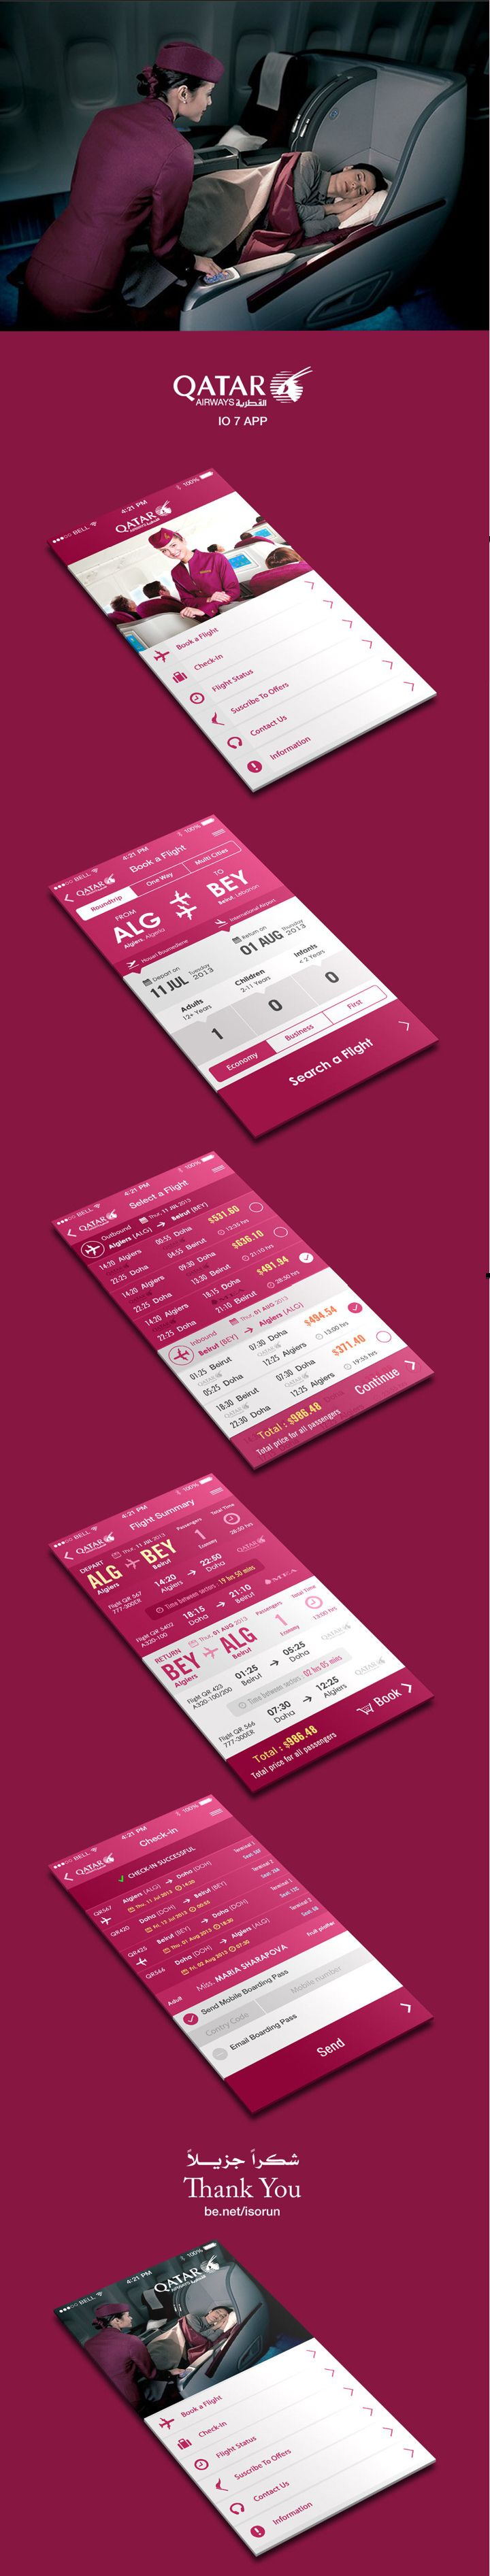 APP design. UI Graphic Design. Mobile